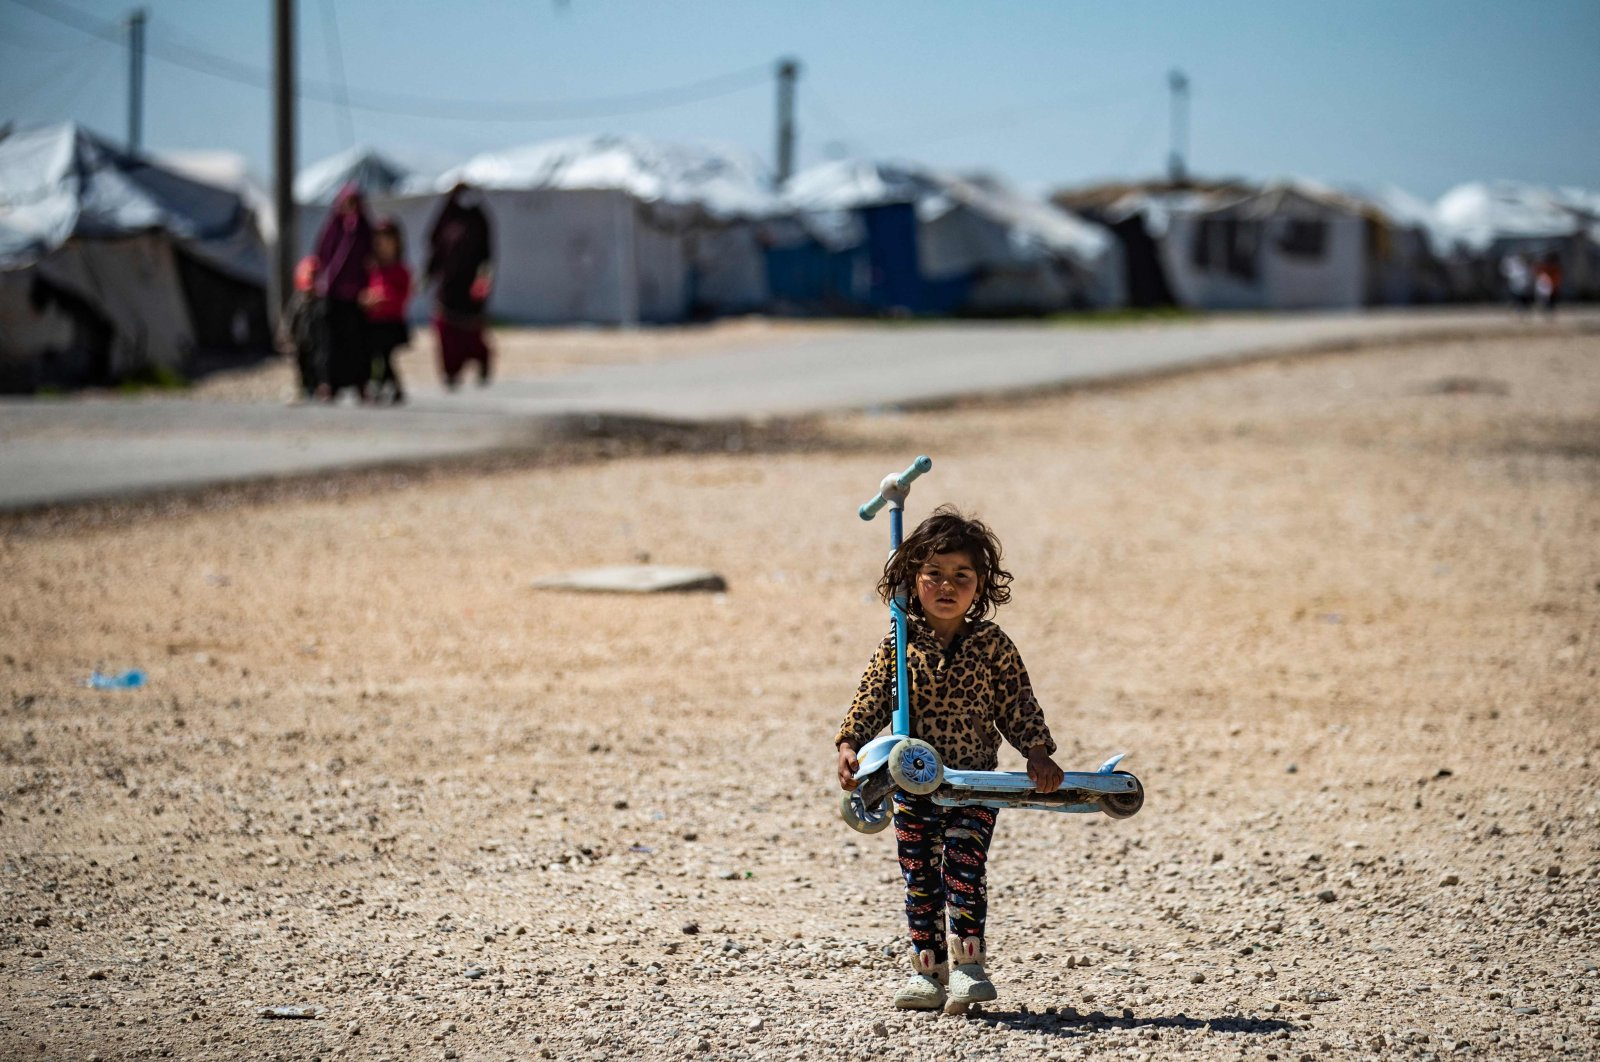 A child carries a kick scooter along a thin tarmac road beyond rows of white tents at Camp Roj, where relatives of people suspected of belonging to Daesh are held, in the countryside near al-Malikiyah (Derik) in Syria's northeastern Hasakah province, March 28, 2021.  (AFP)